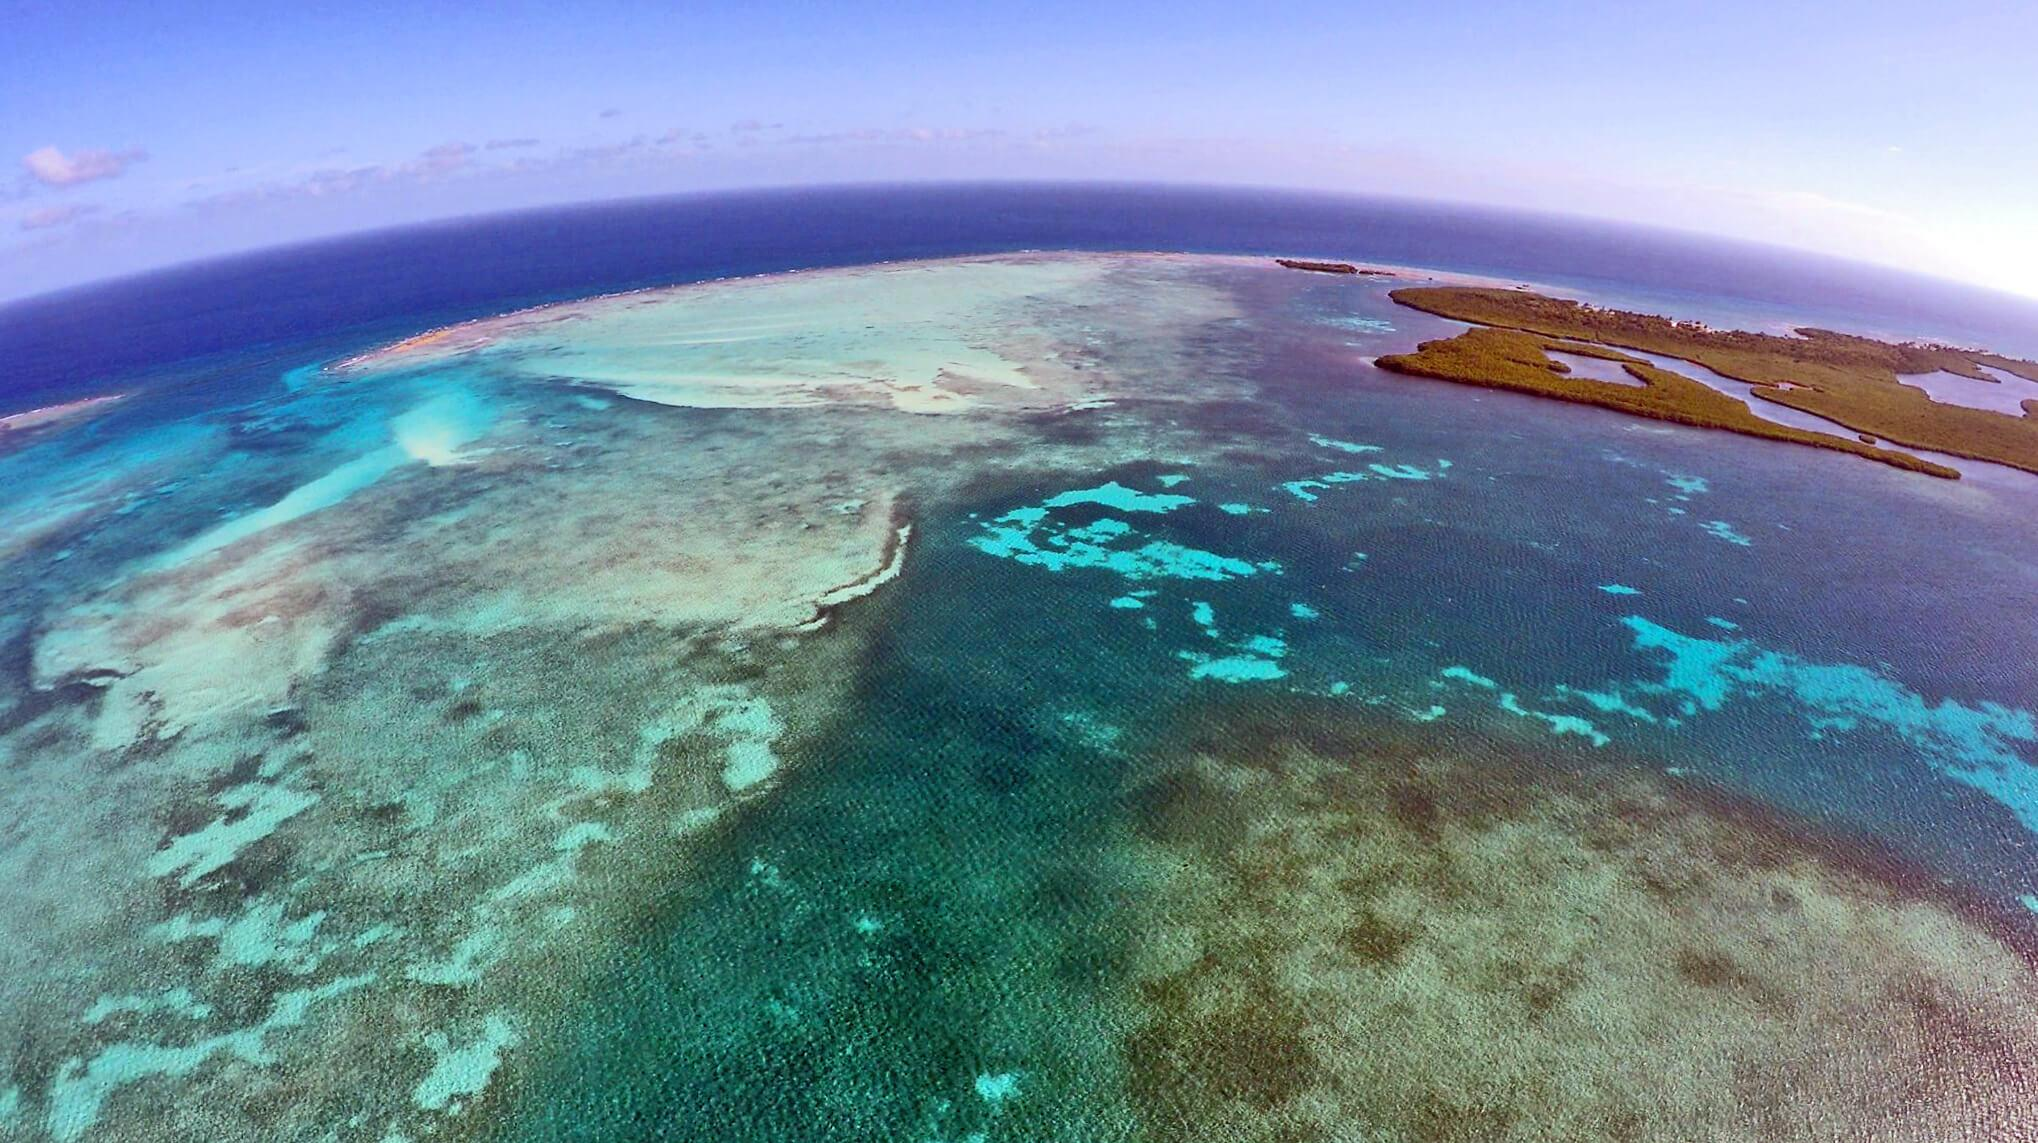 An aerial view of Calabash Caye in Turneffe Atoll. © Eric Ramos